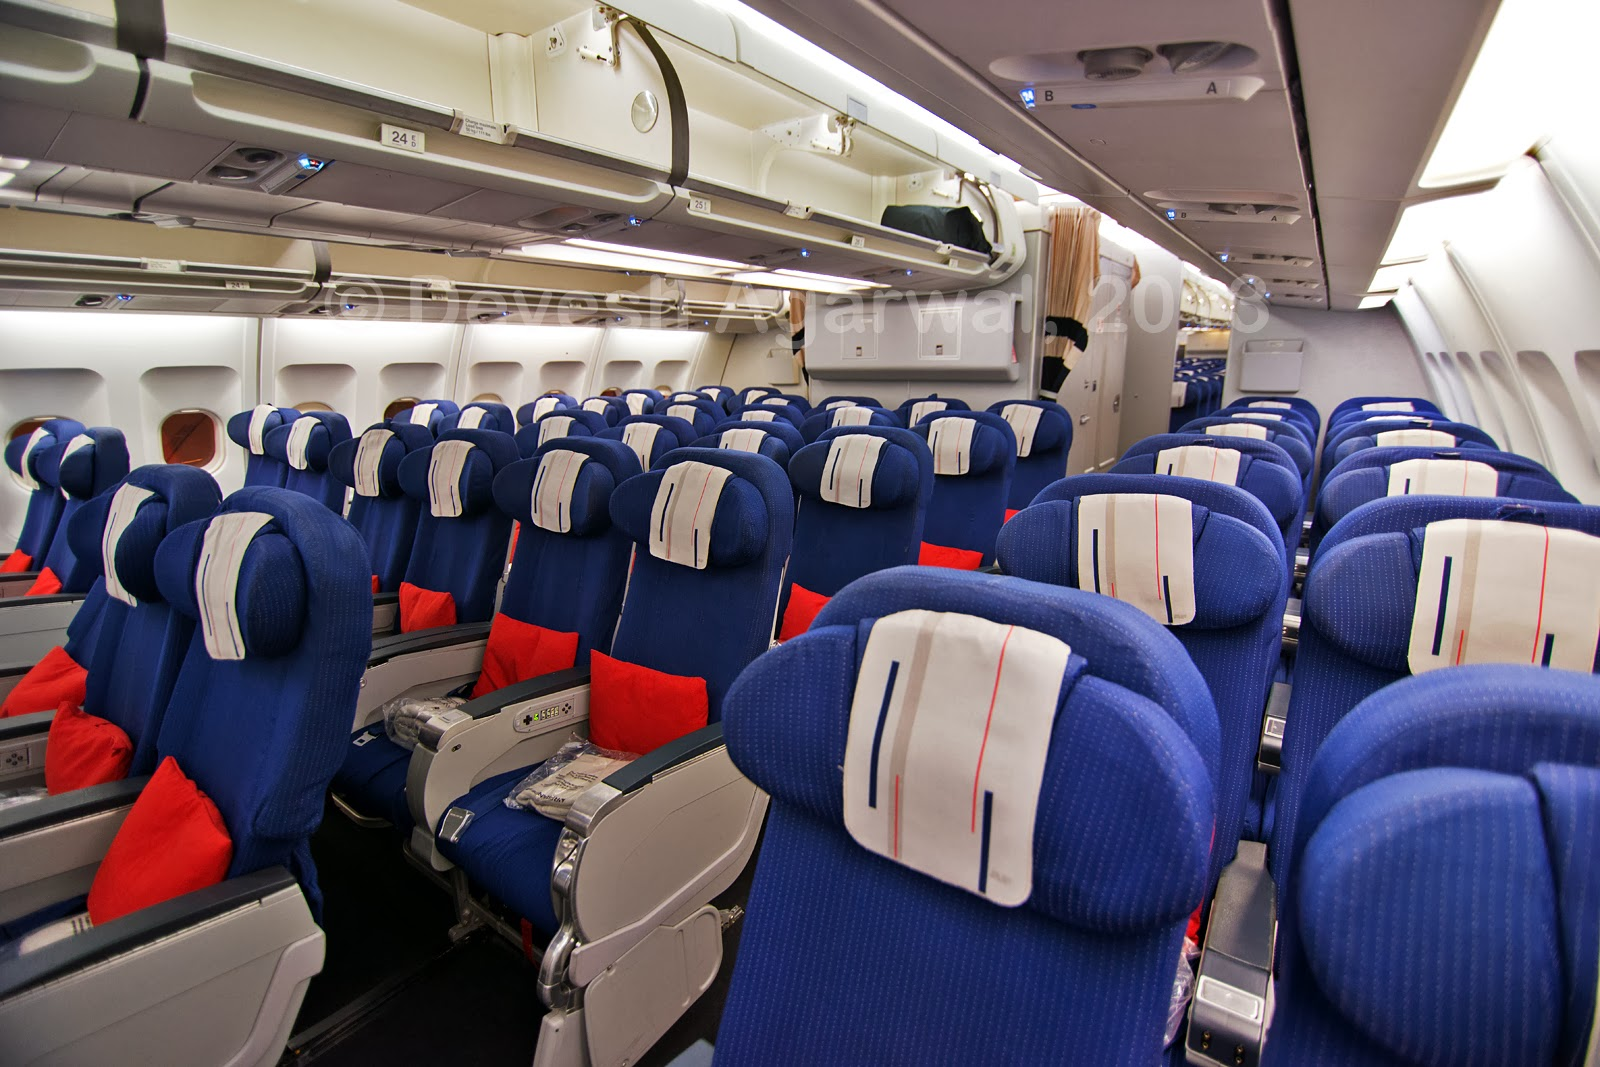 Air France A330-200 Economy class cabin. Photo by Devesh Agarwal.